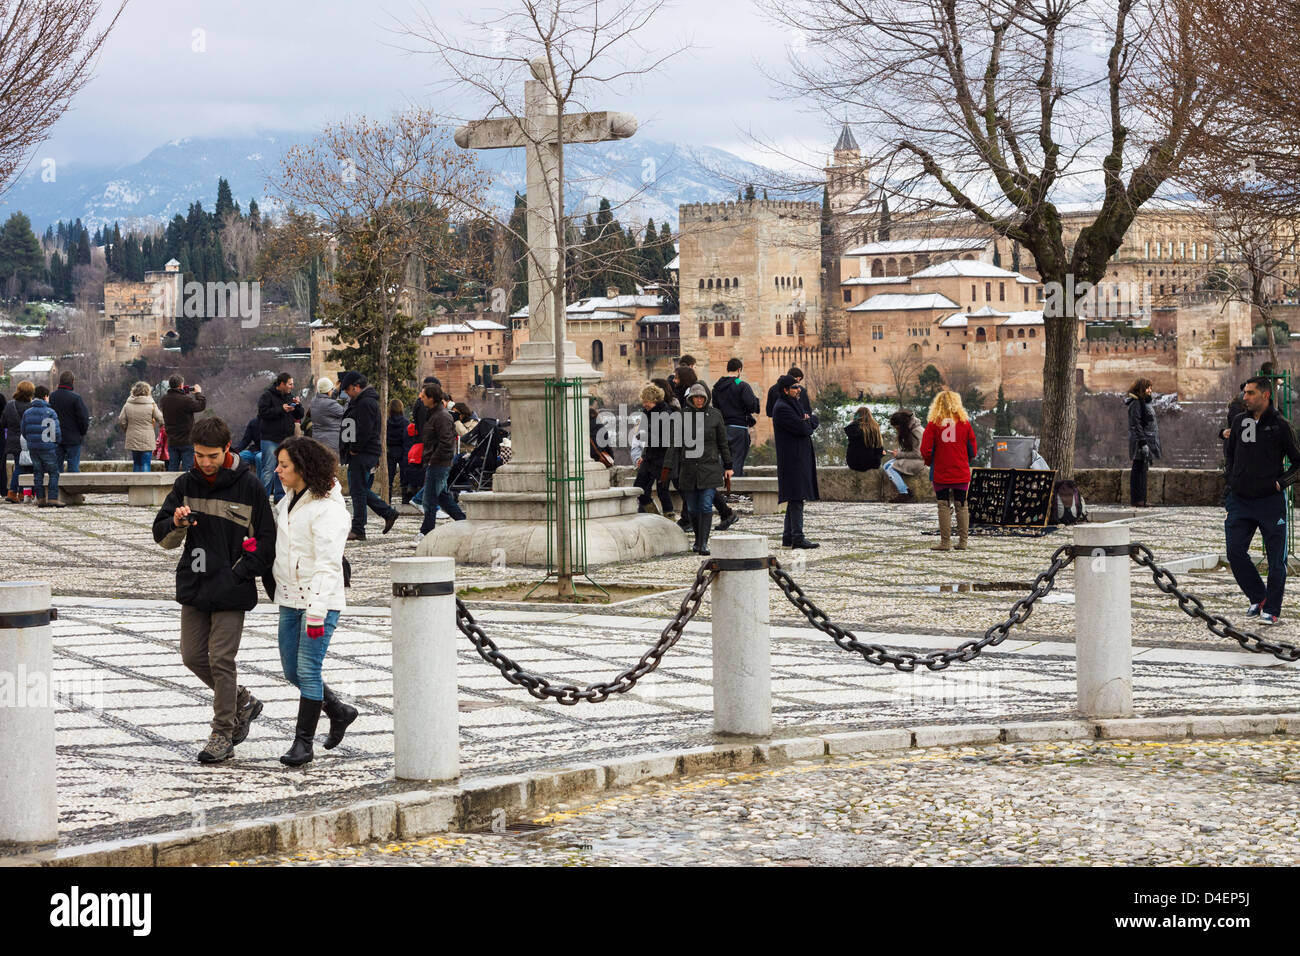 Tourists at San Nicolas square and viewpoint with Alhambra palace in background. Granada, Spain - Stock Image